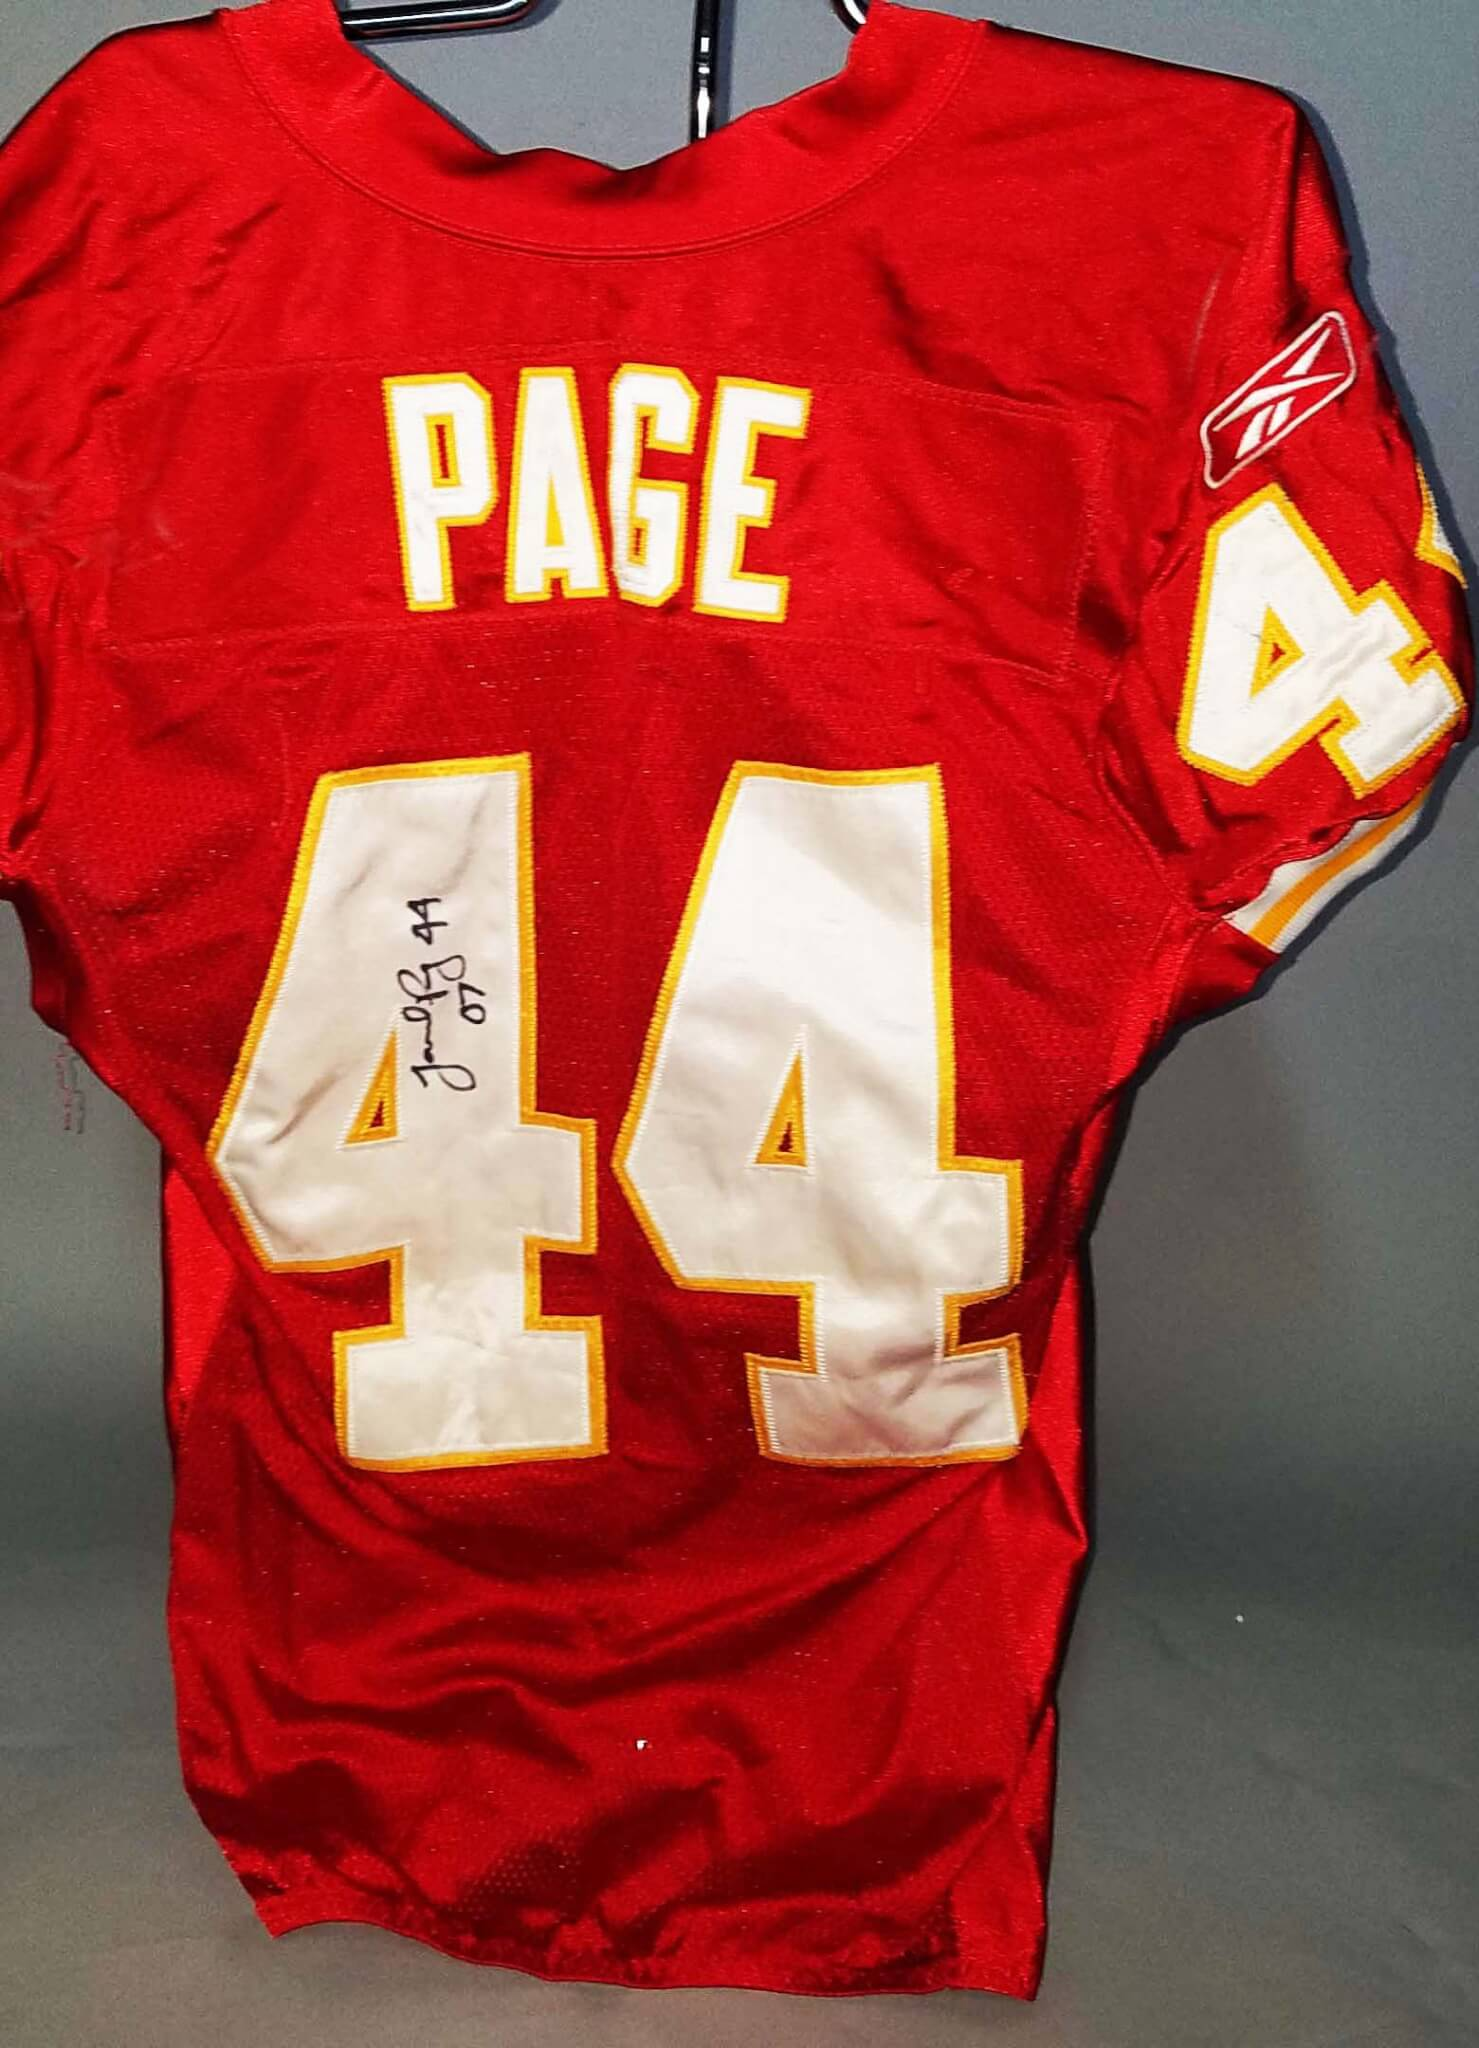 2007 Jarrad Page Game Worn, Signed Kansas City Chiefs Jersey  for cheap